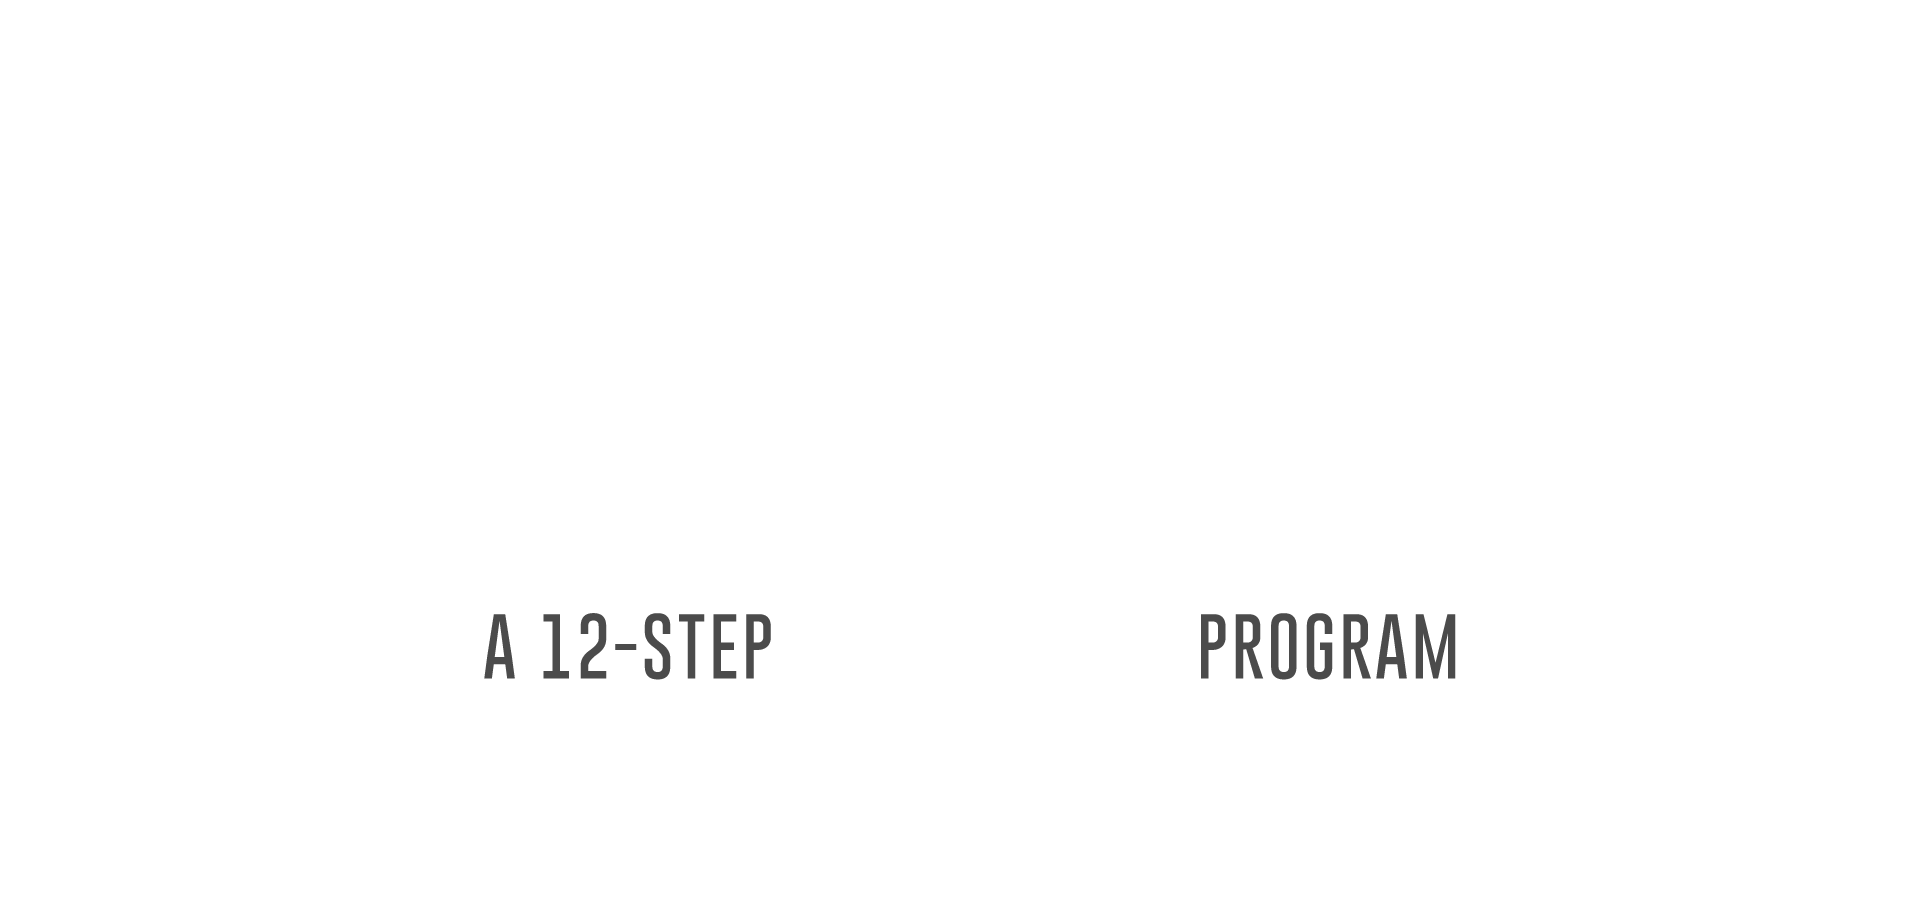 new life logo transparent.png